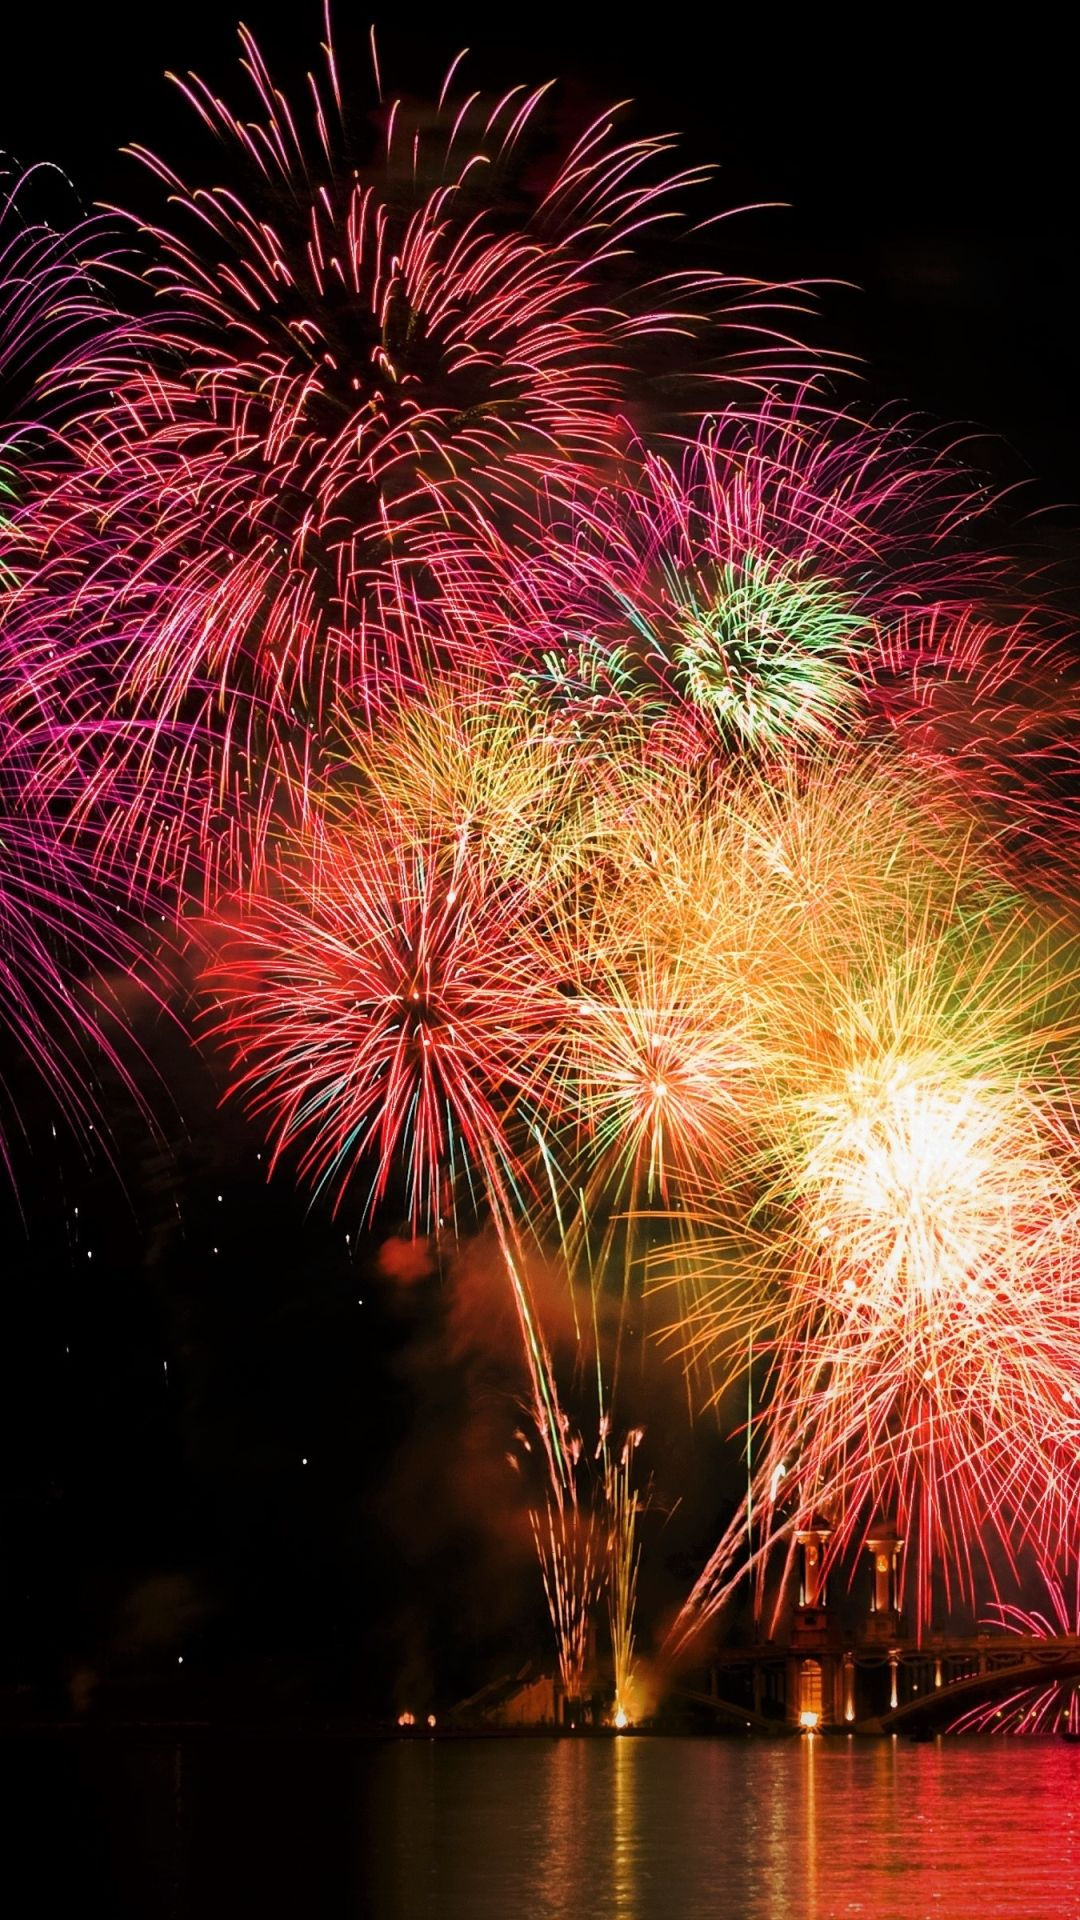 New Year S Eve Fireworks Photography Fireworks Colorful Colors Fireworks Holiday New Year Ni Fireworks Wallpaper Fireworks Photography Photographing Fireworks